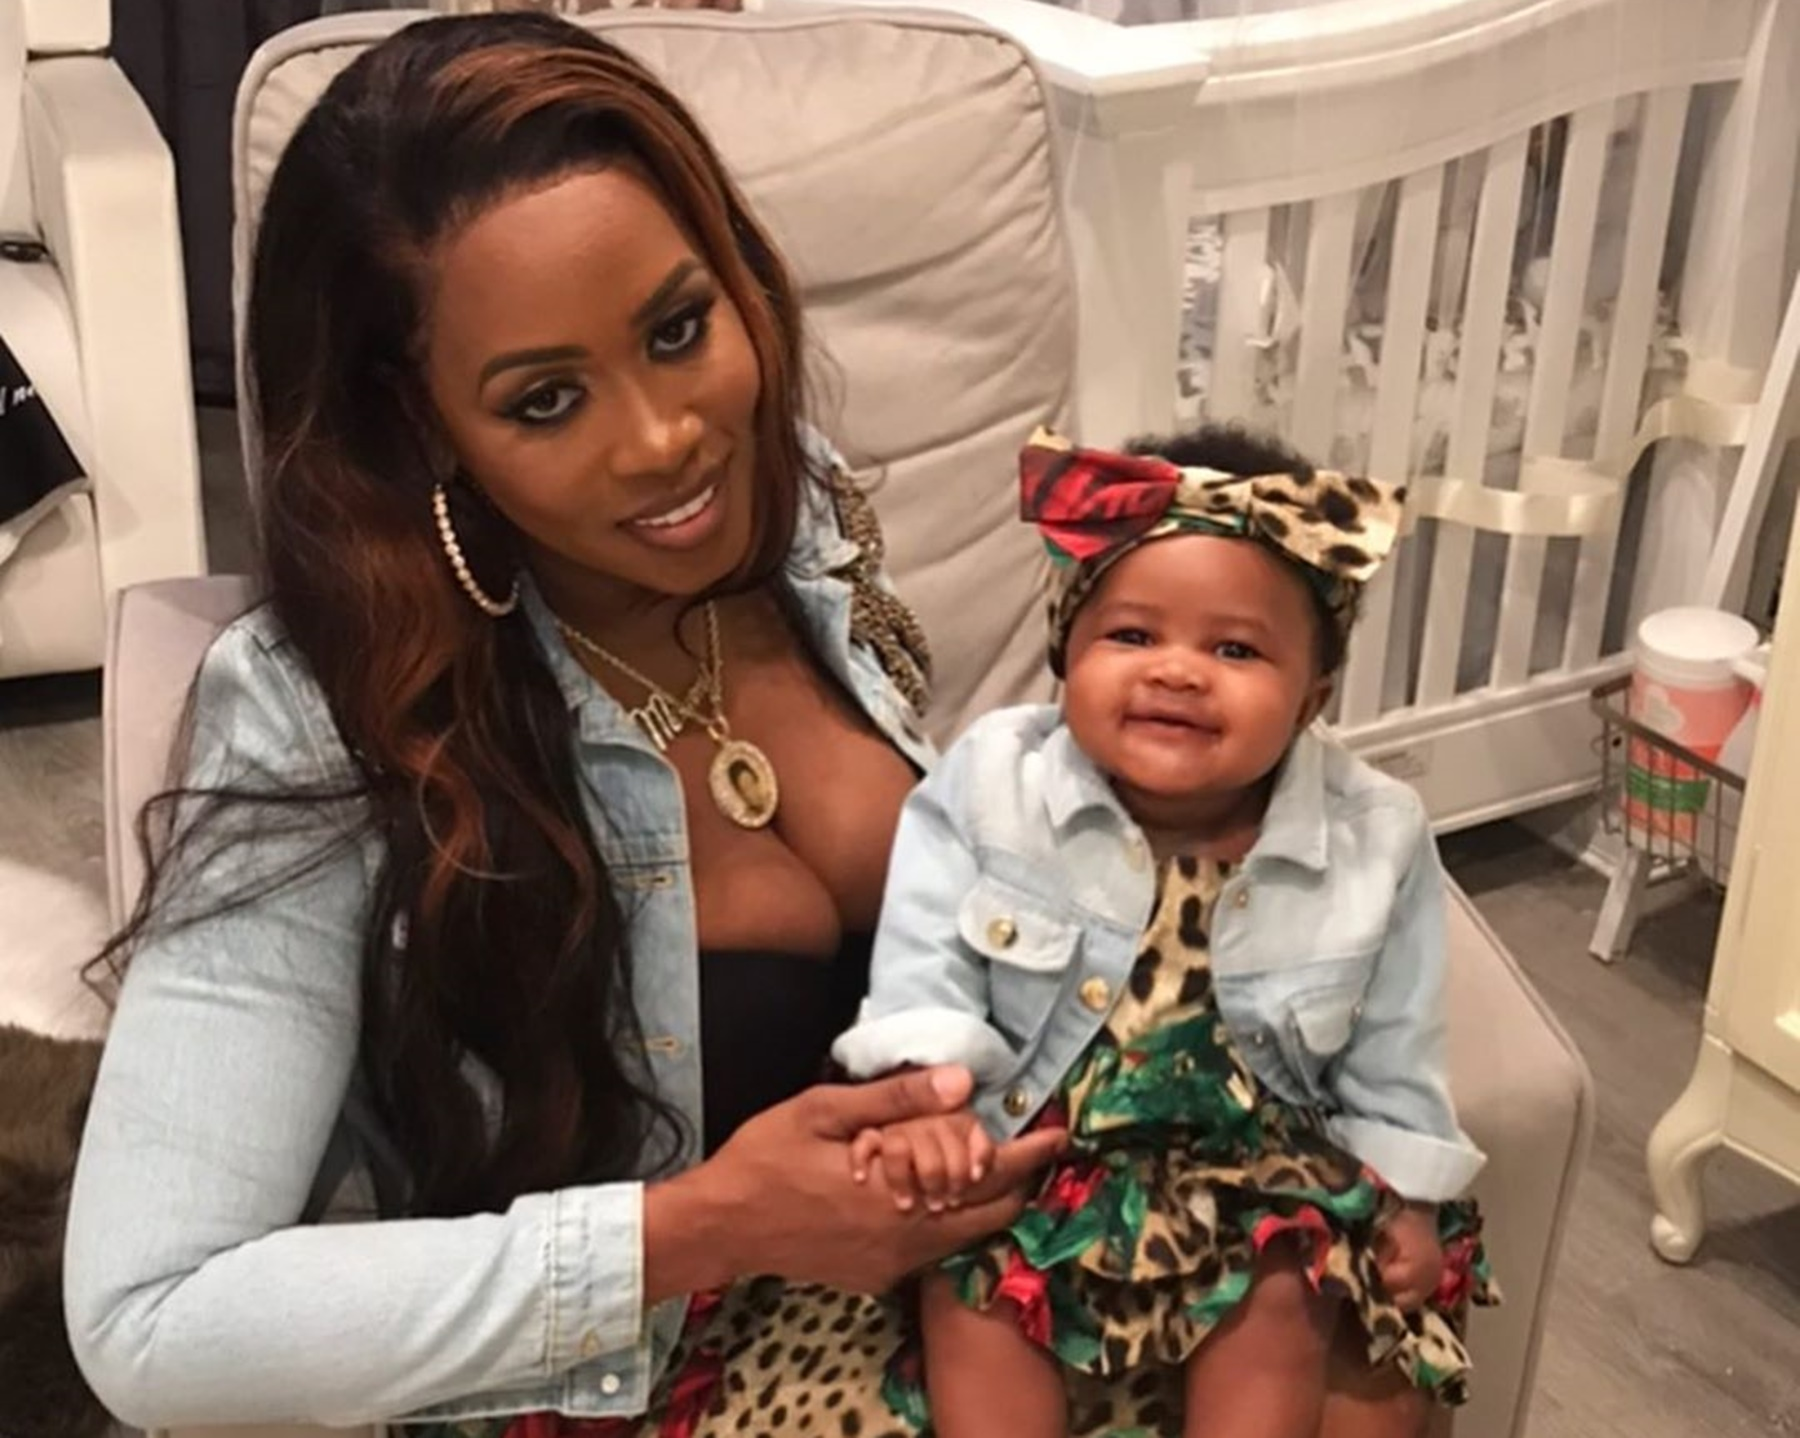 papoose-shared-a-video-featuring-his-and-remy-mas-daughter-that-has-fans-cracking-up